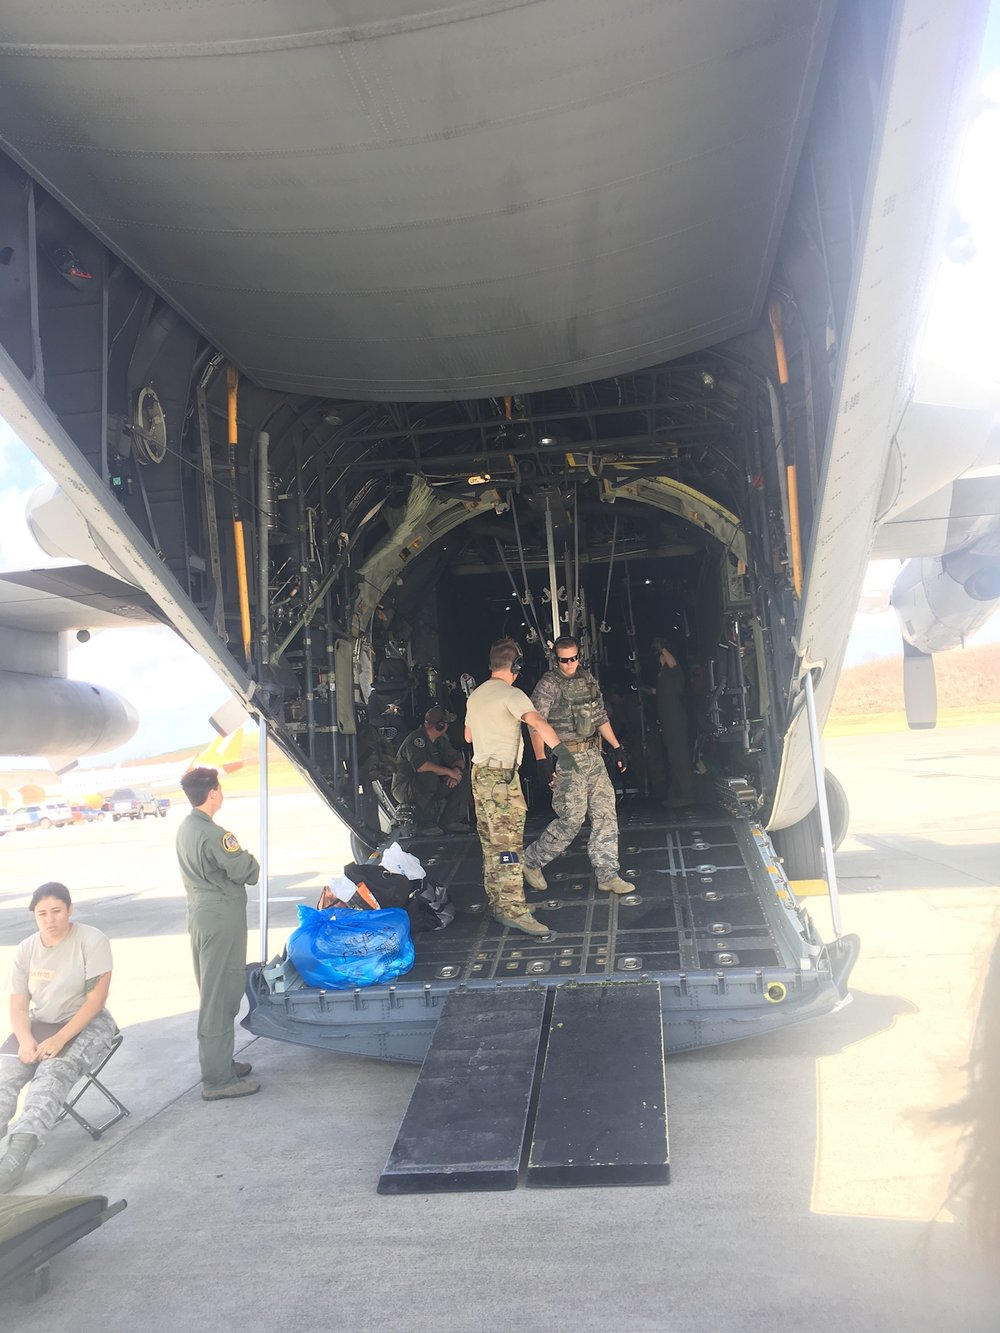 Assisting the US Air Force with medical evacuations in St. Croix following hurricane devastation.